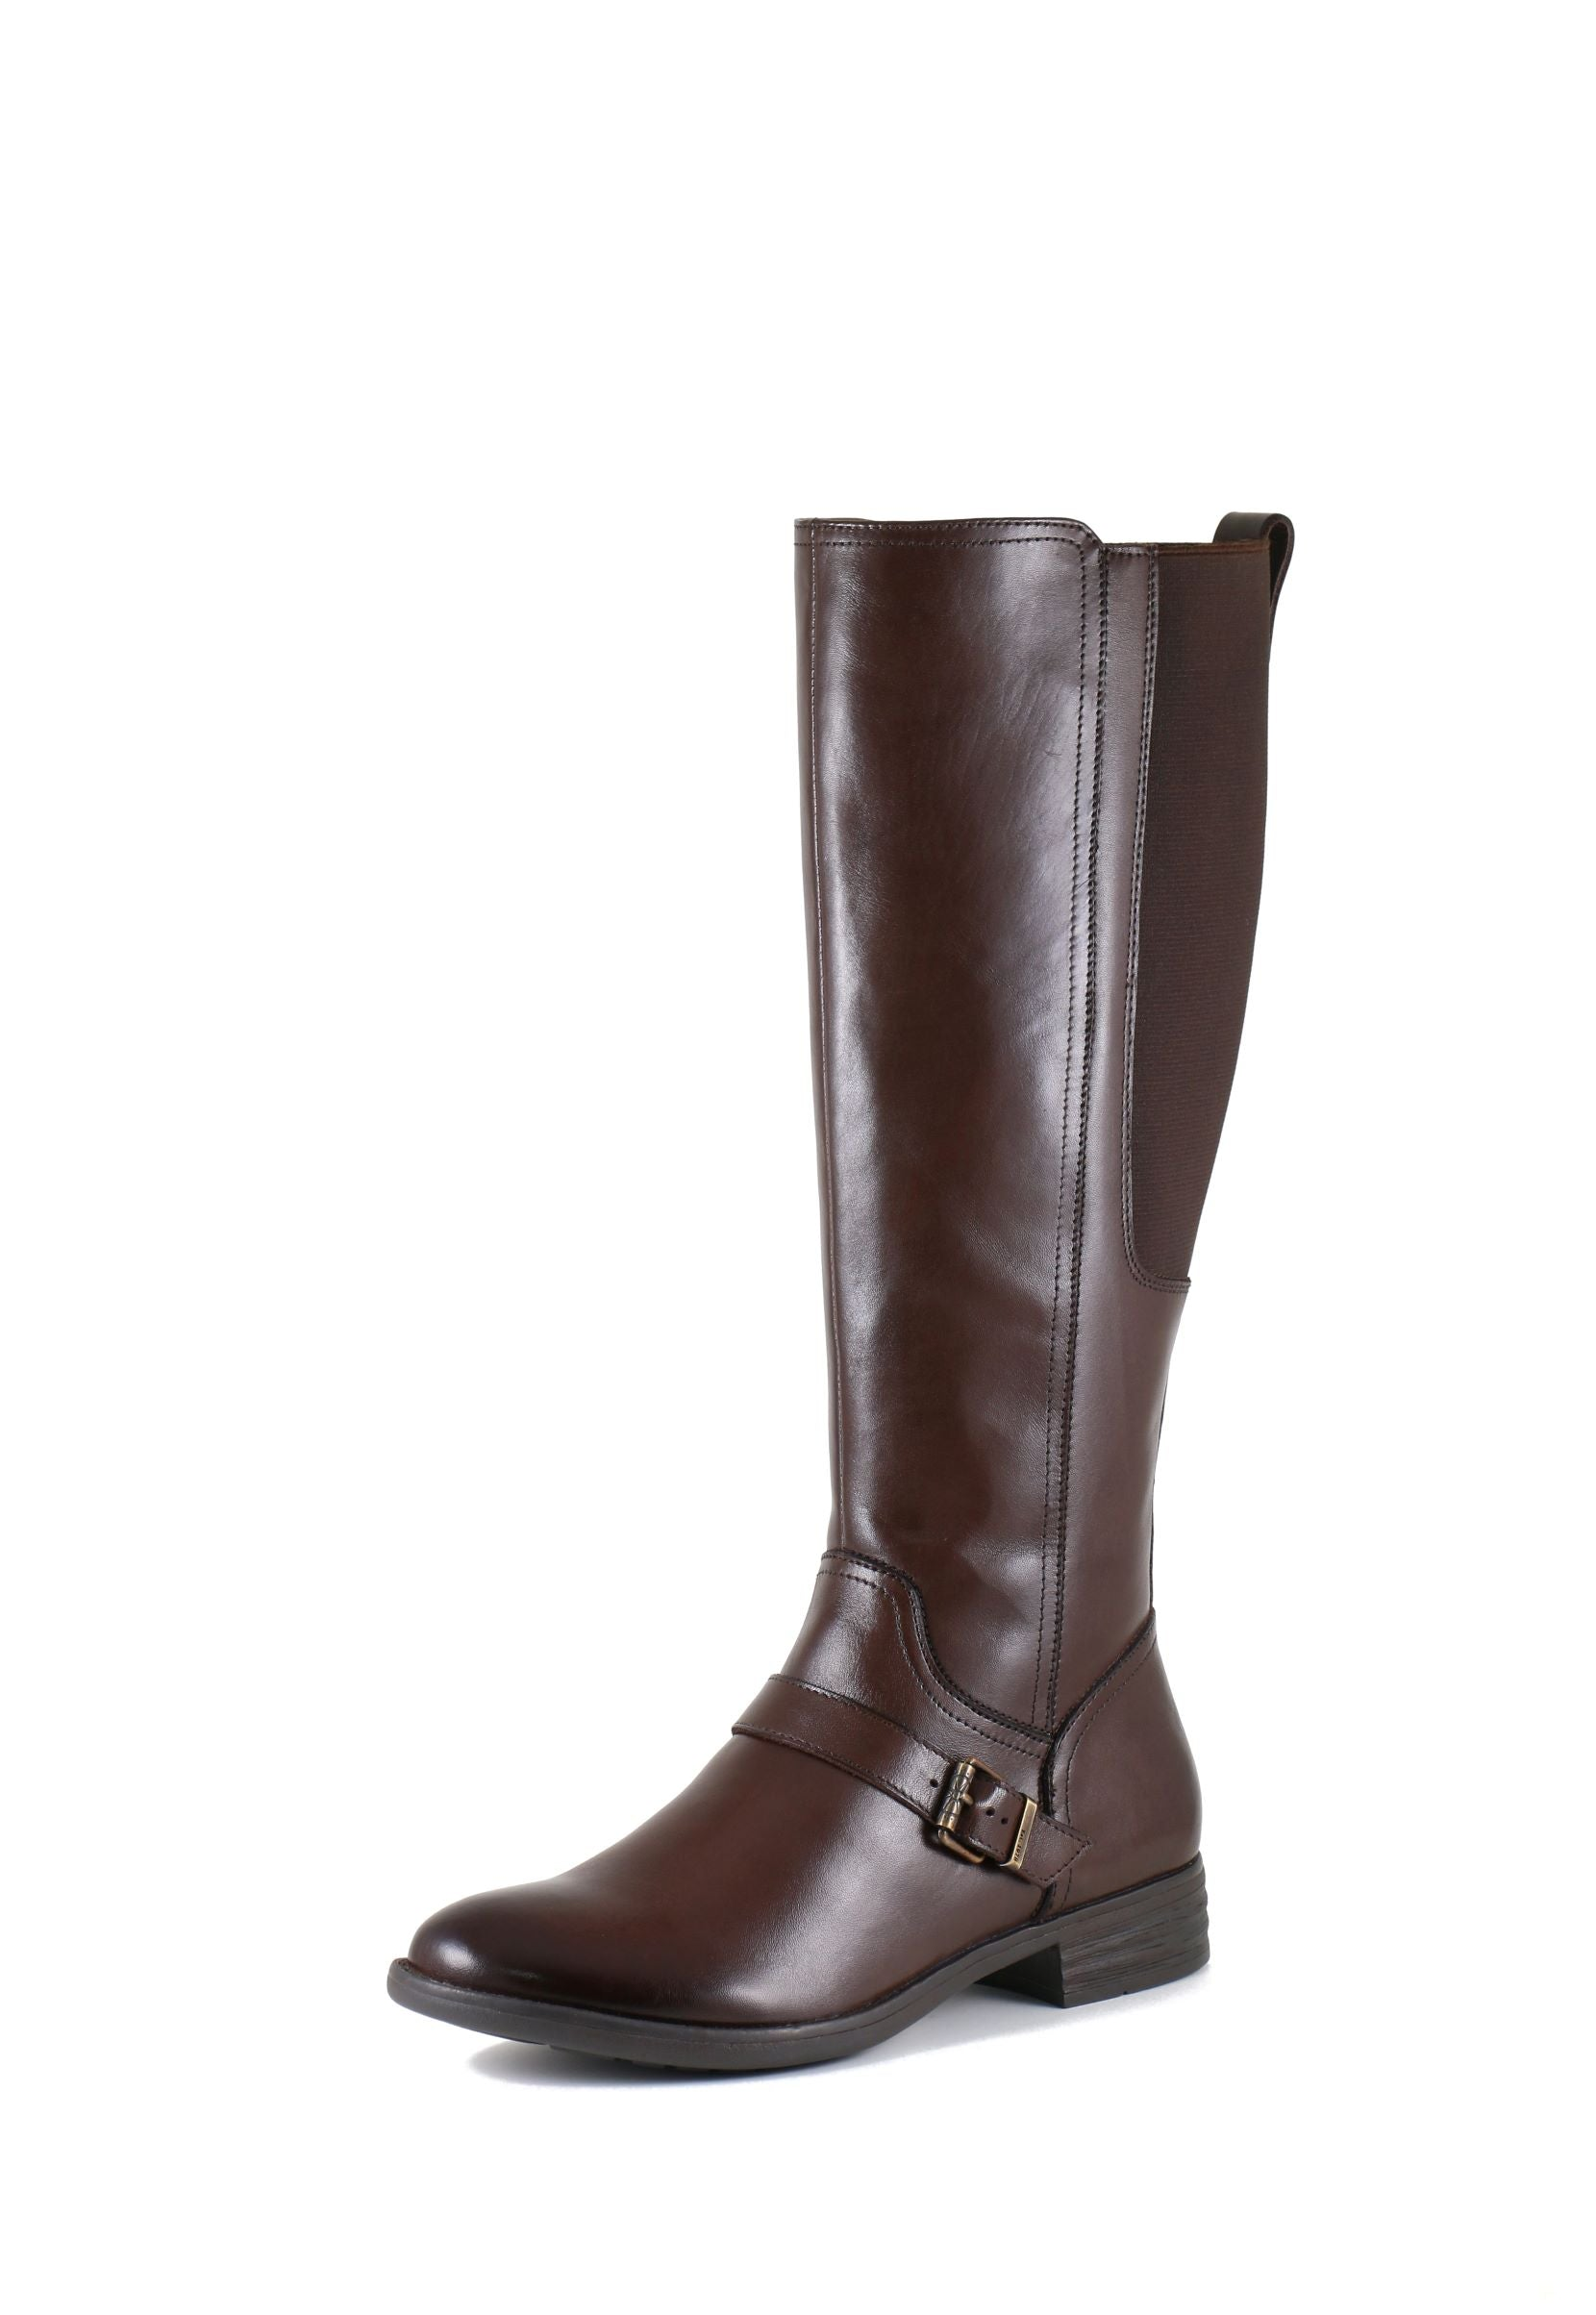 'Bussola' Trapani Tatiana - Women's Tall Boot - Seal Brown